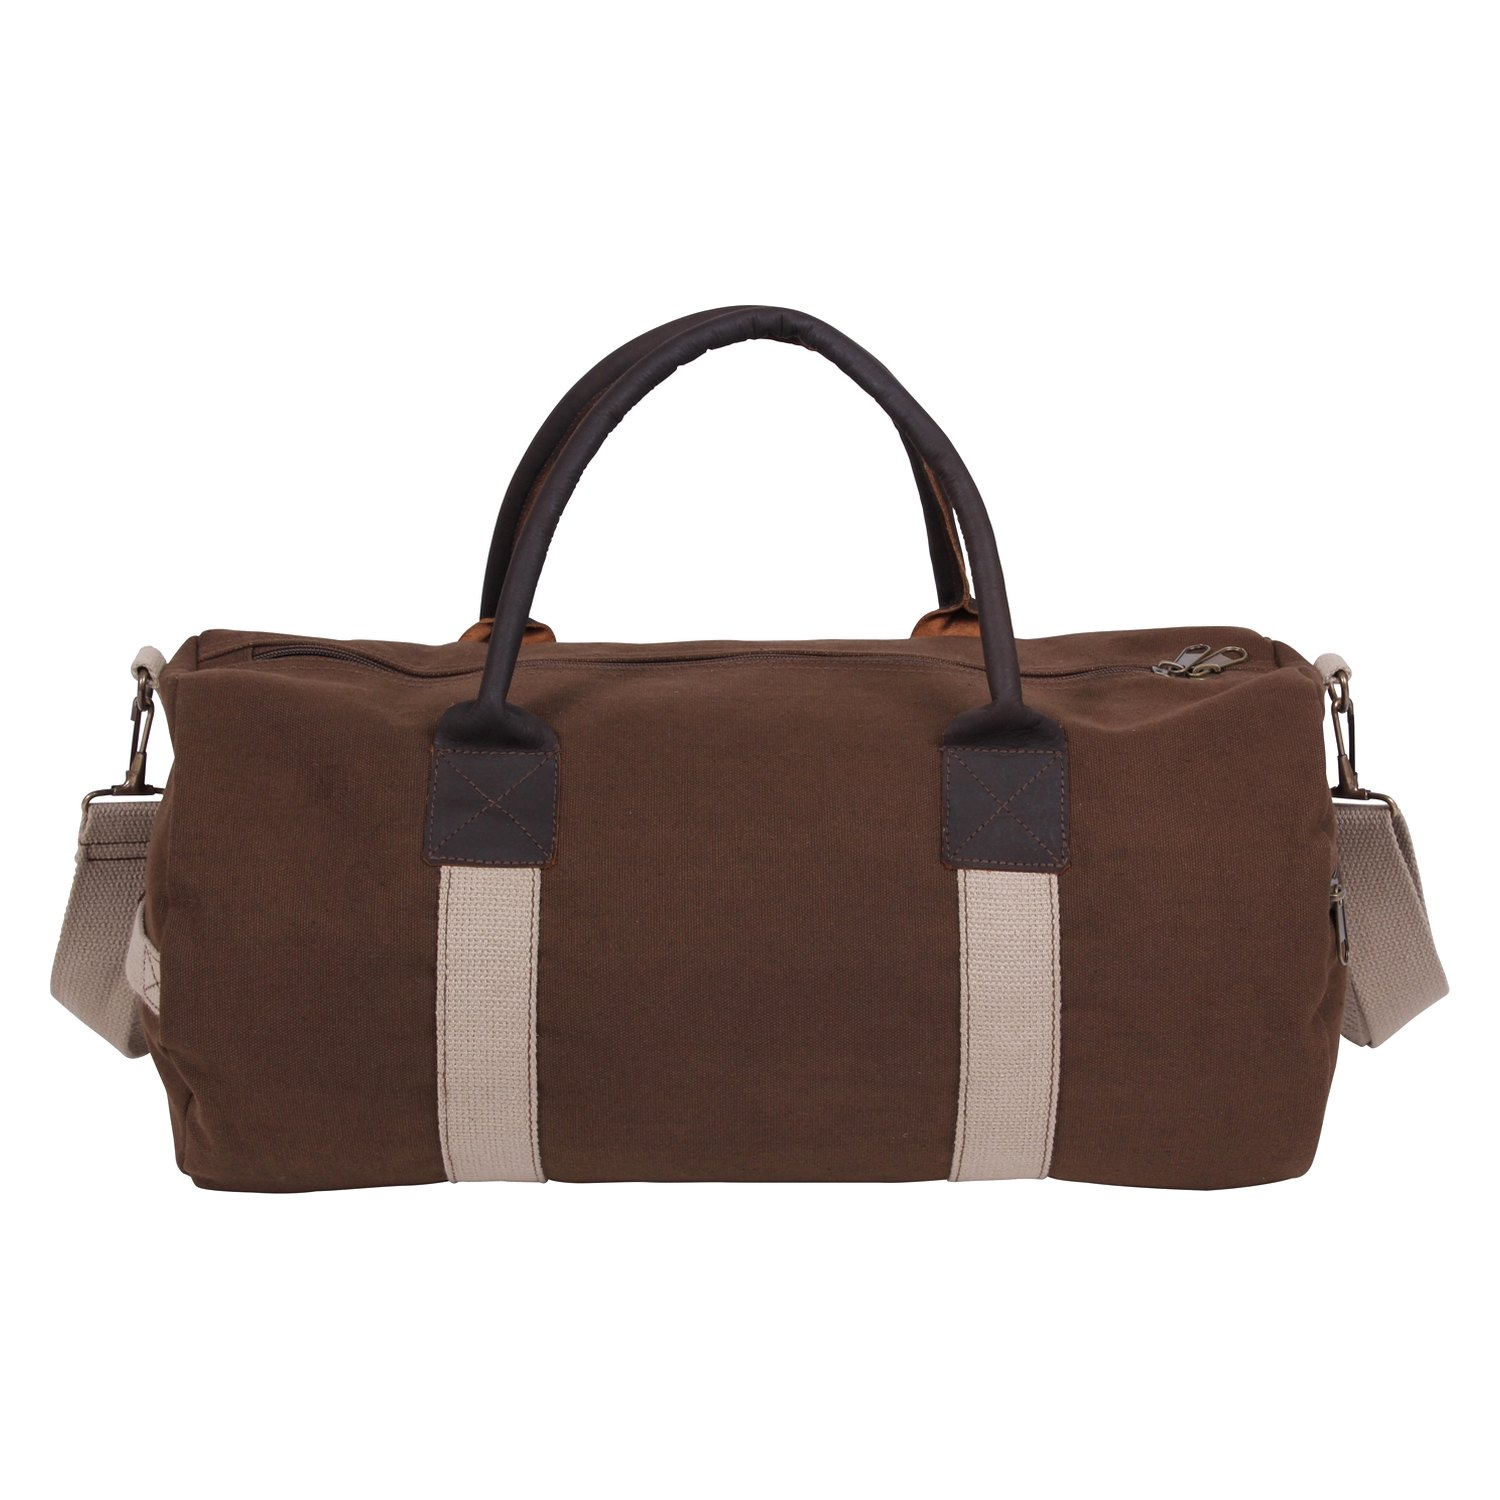 bc4571435e Rothco® - Canvas and Leather Gym Duffle Bag - RECREATIONiD.com